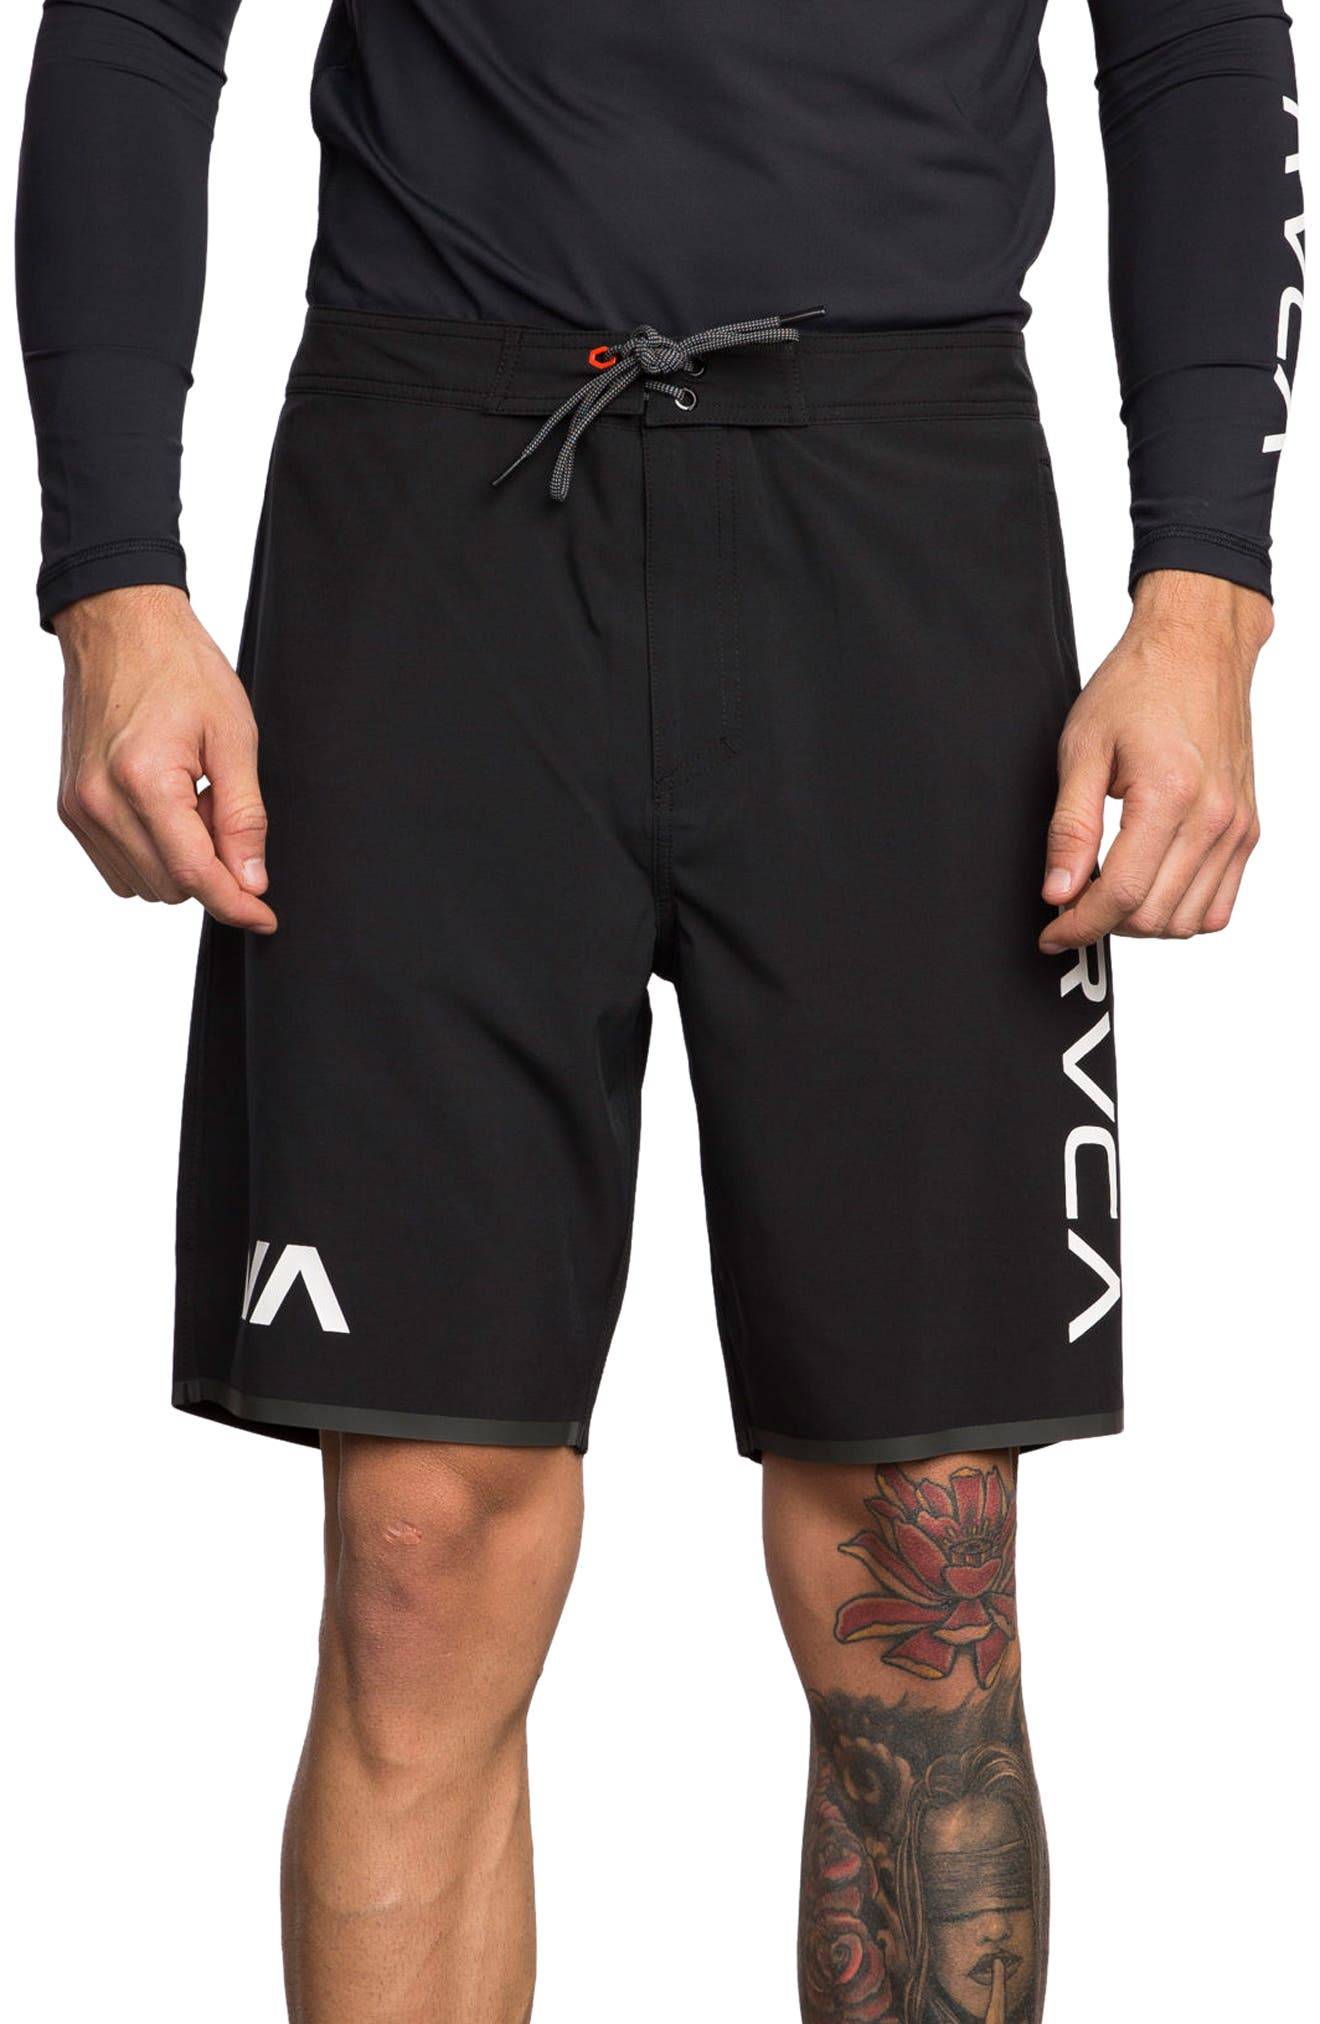 Main Image - RVCA Staff III Dual Layer Performance Shorts